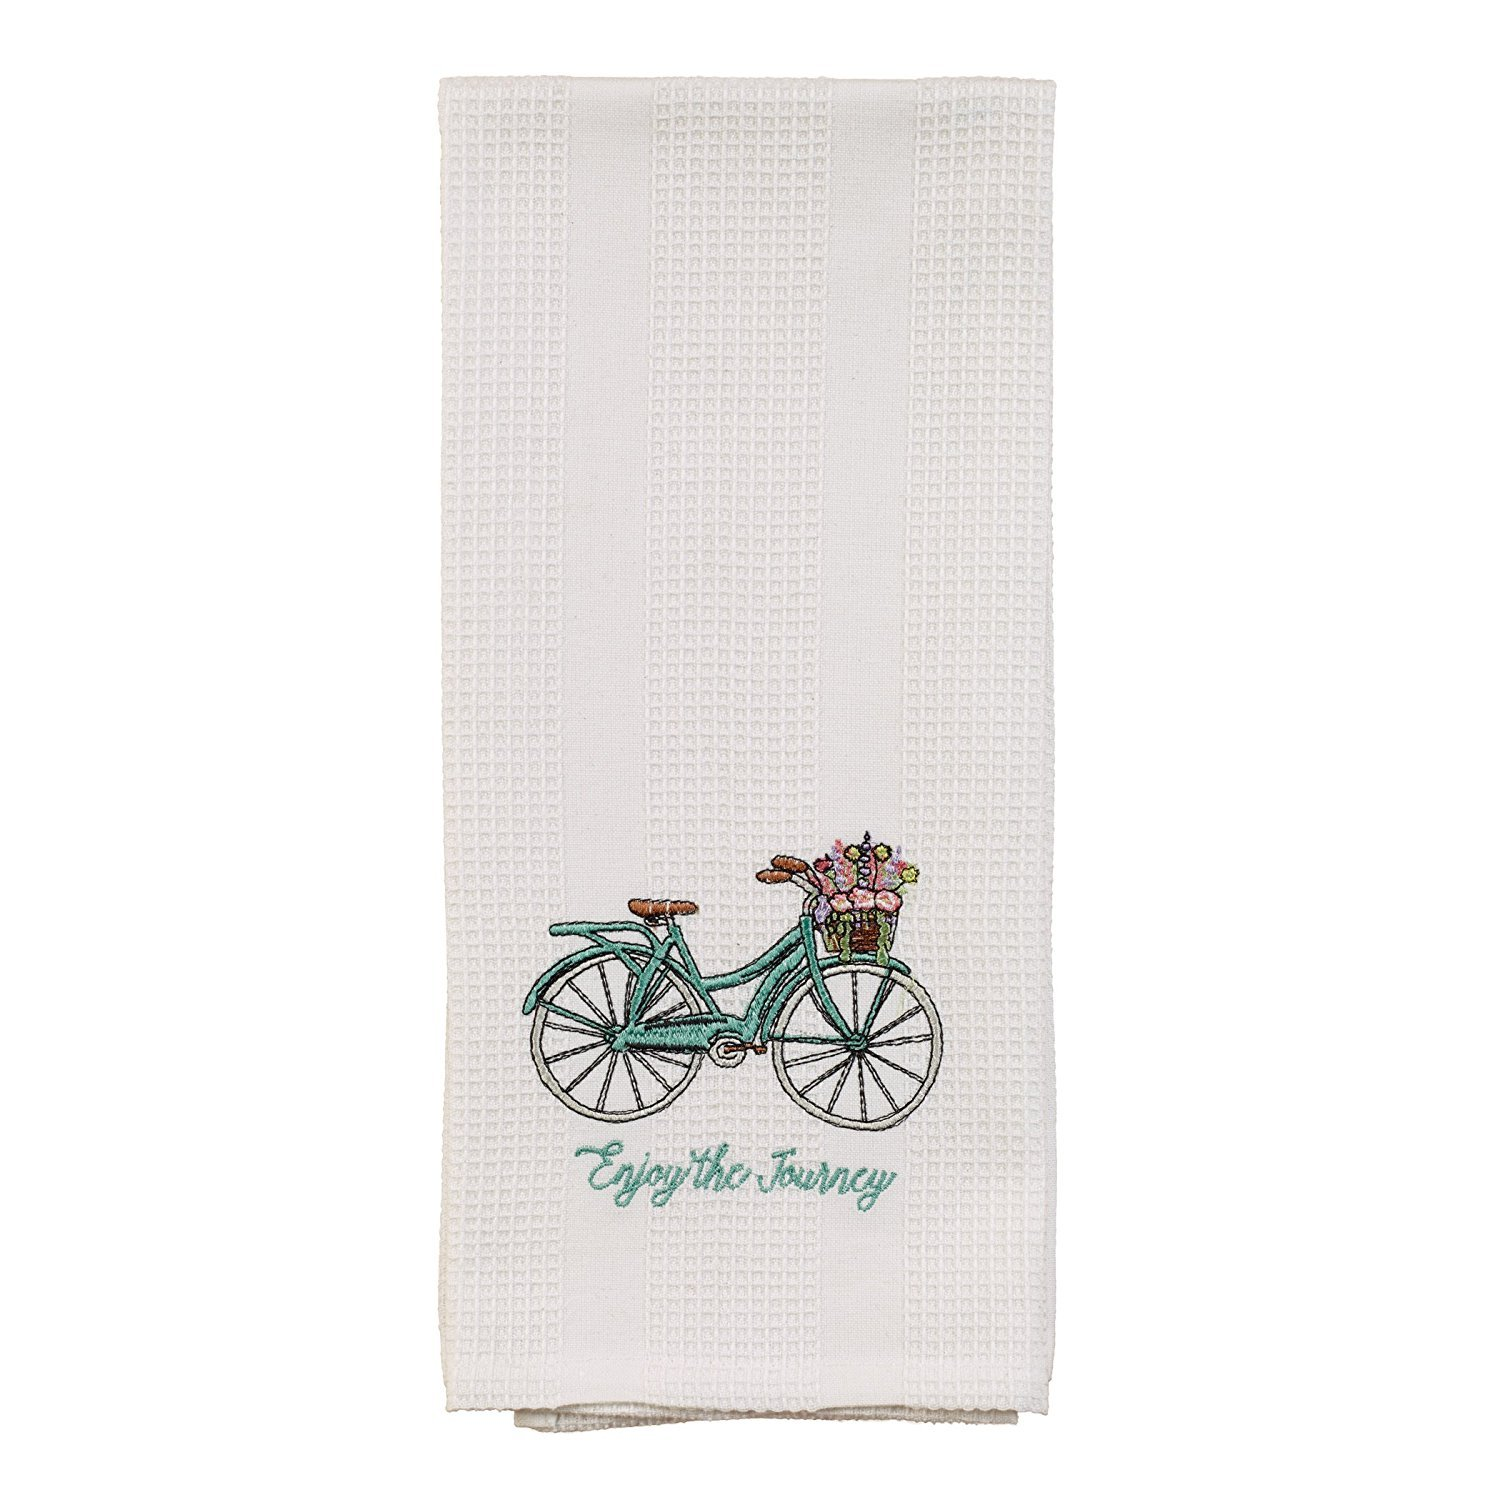 White Enjoy the Journey Teal Bicycle Basket 19 x 28 Inch Embroidered Cotton Waffle Dish Towel The Country House Collection